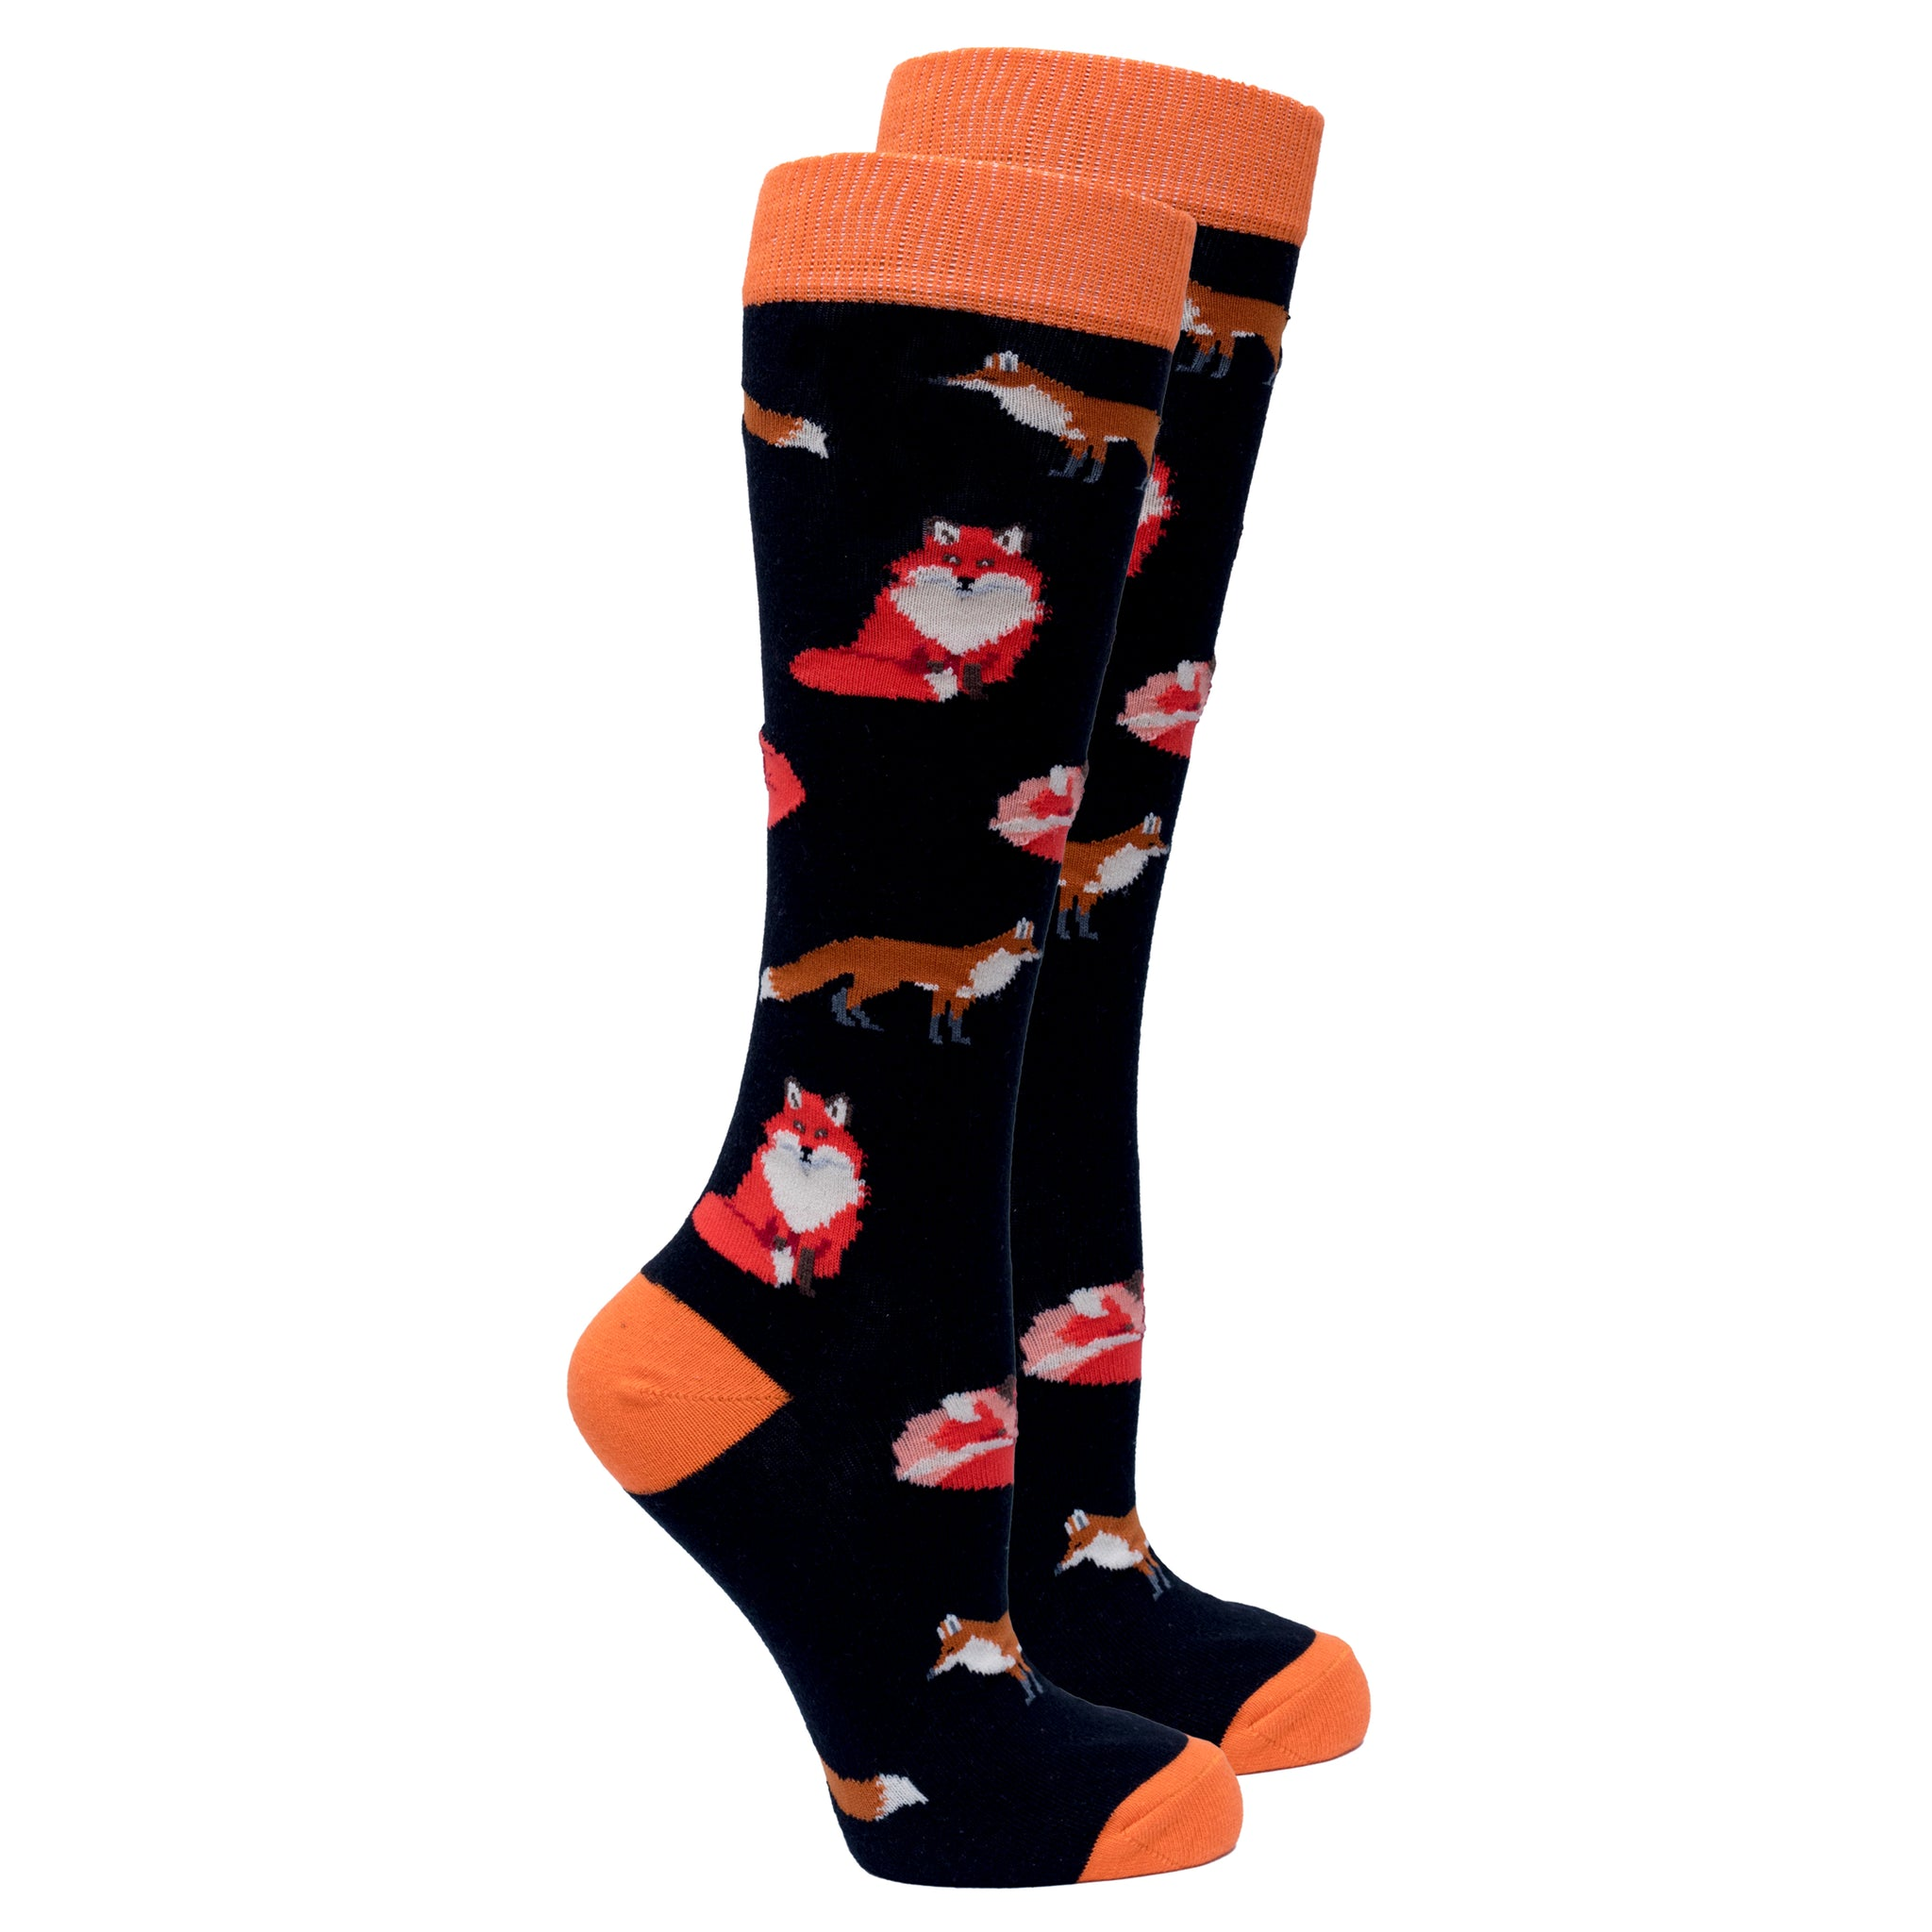 Women's Sneaky Fox Knee High Socks